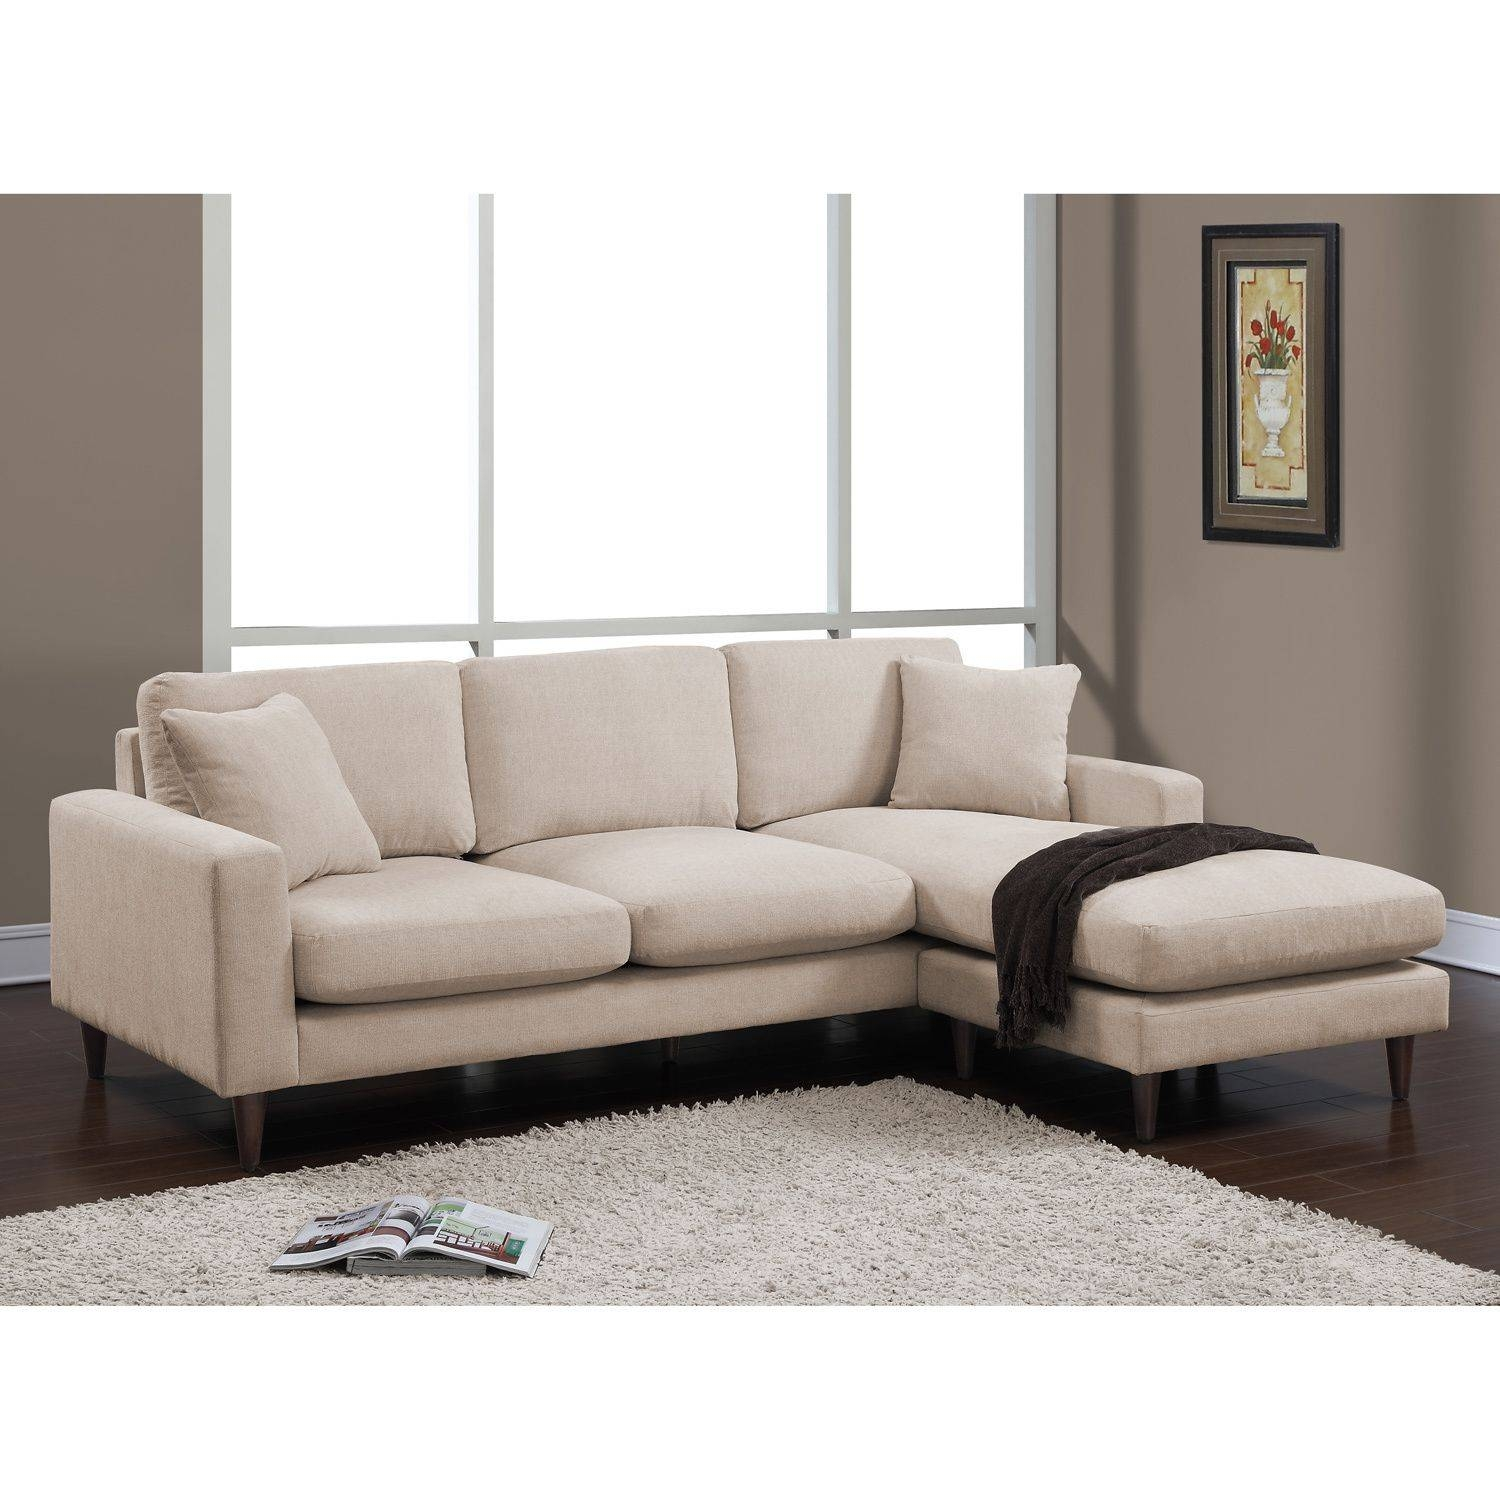 Sofas Center : Down Sectional Sofa Img 3386 Jpg Feather Asheville within Goose Down Sectional Sofa (Image 19 of 25)